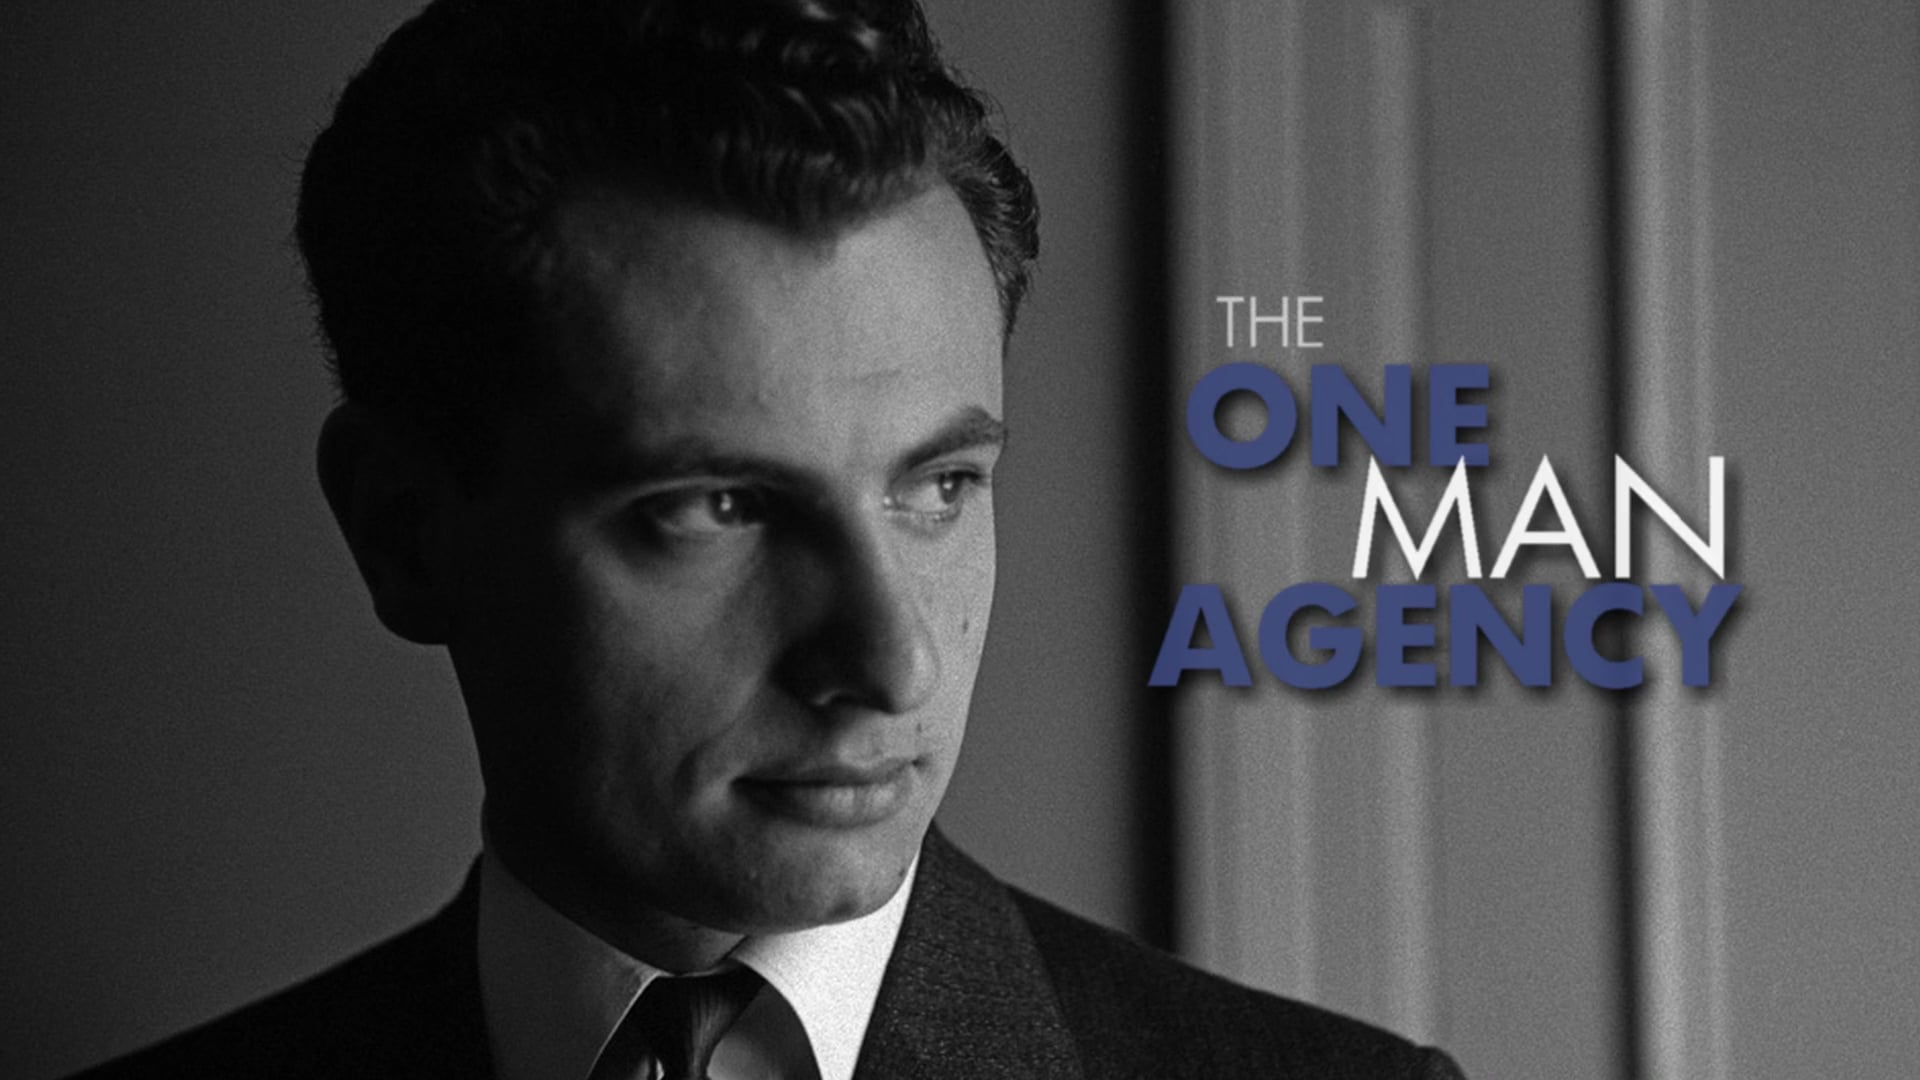 THE ONE MAN AGENCY